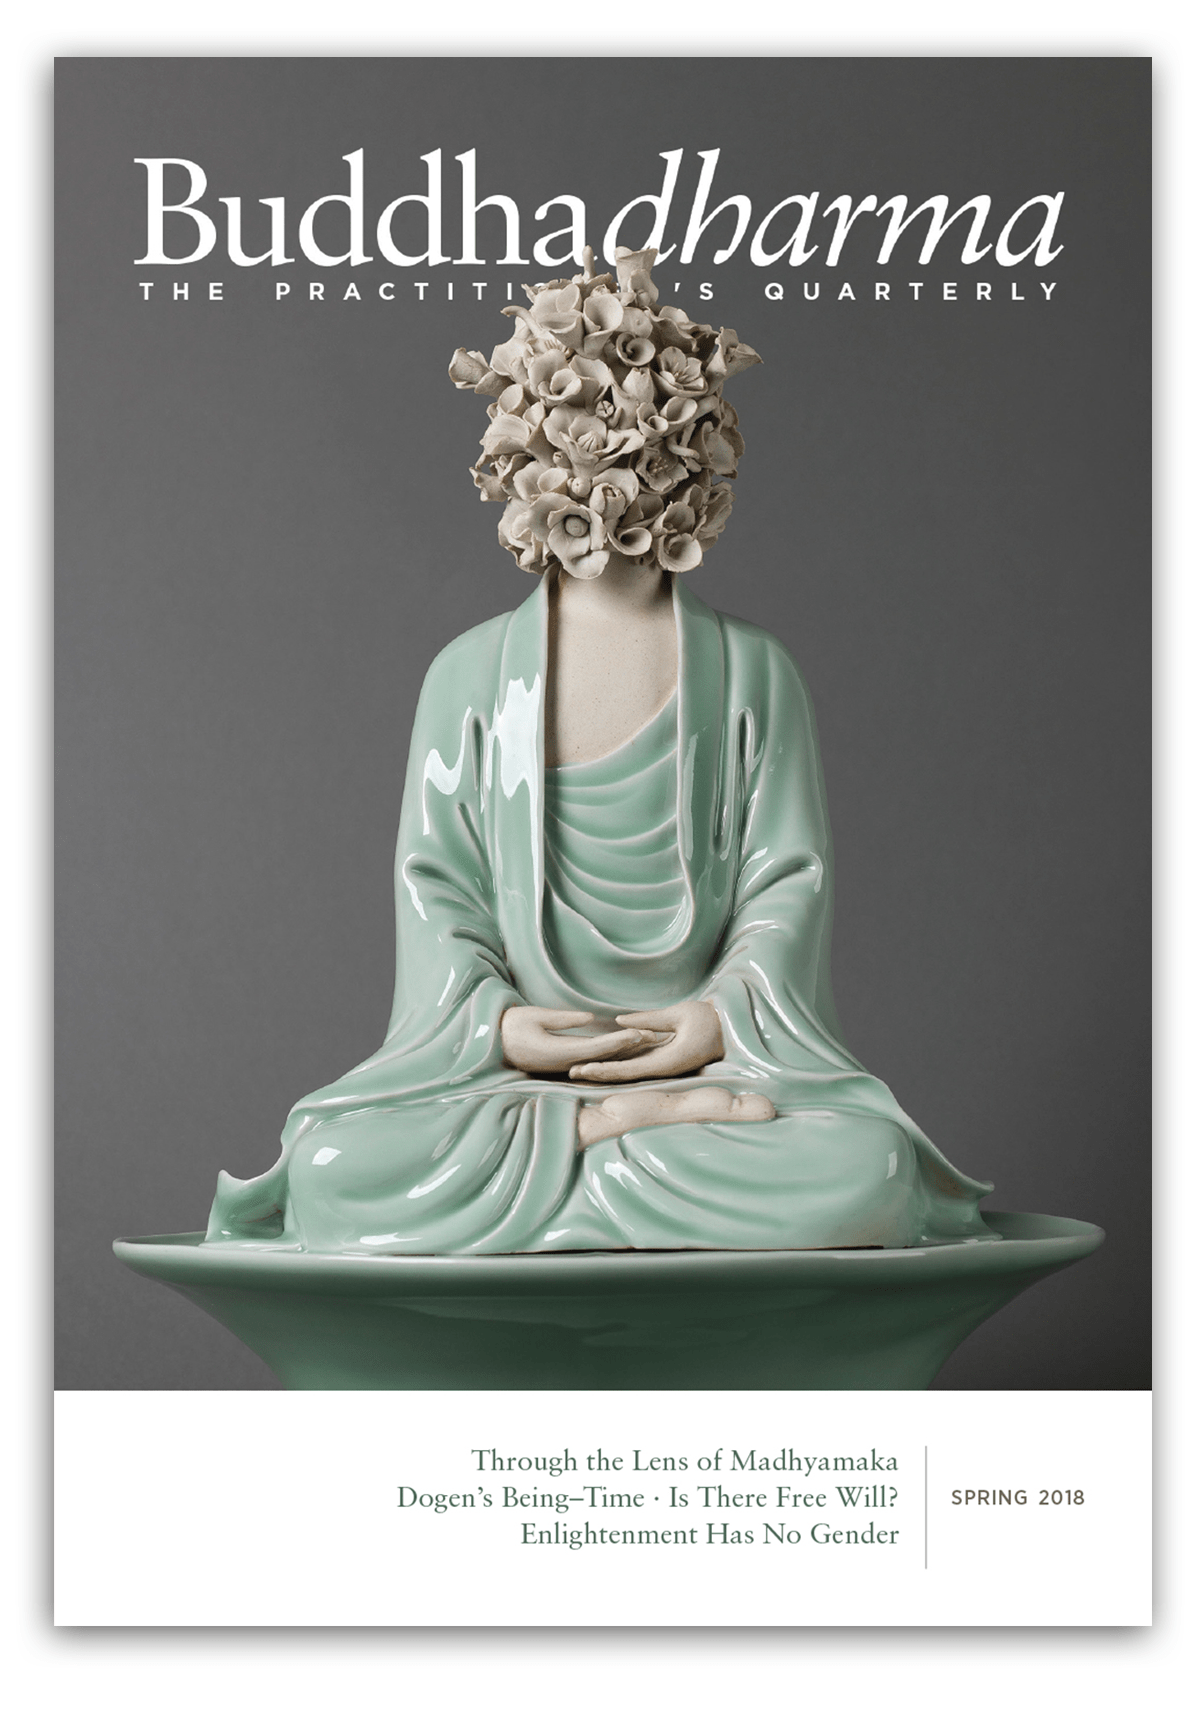 Buddhadharma magazine cover. There is a ceramic figure meditating on the front with the face made out of flowers.